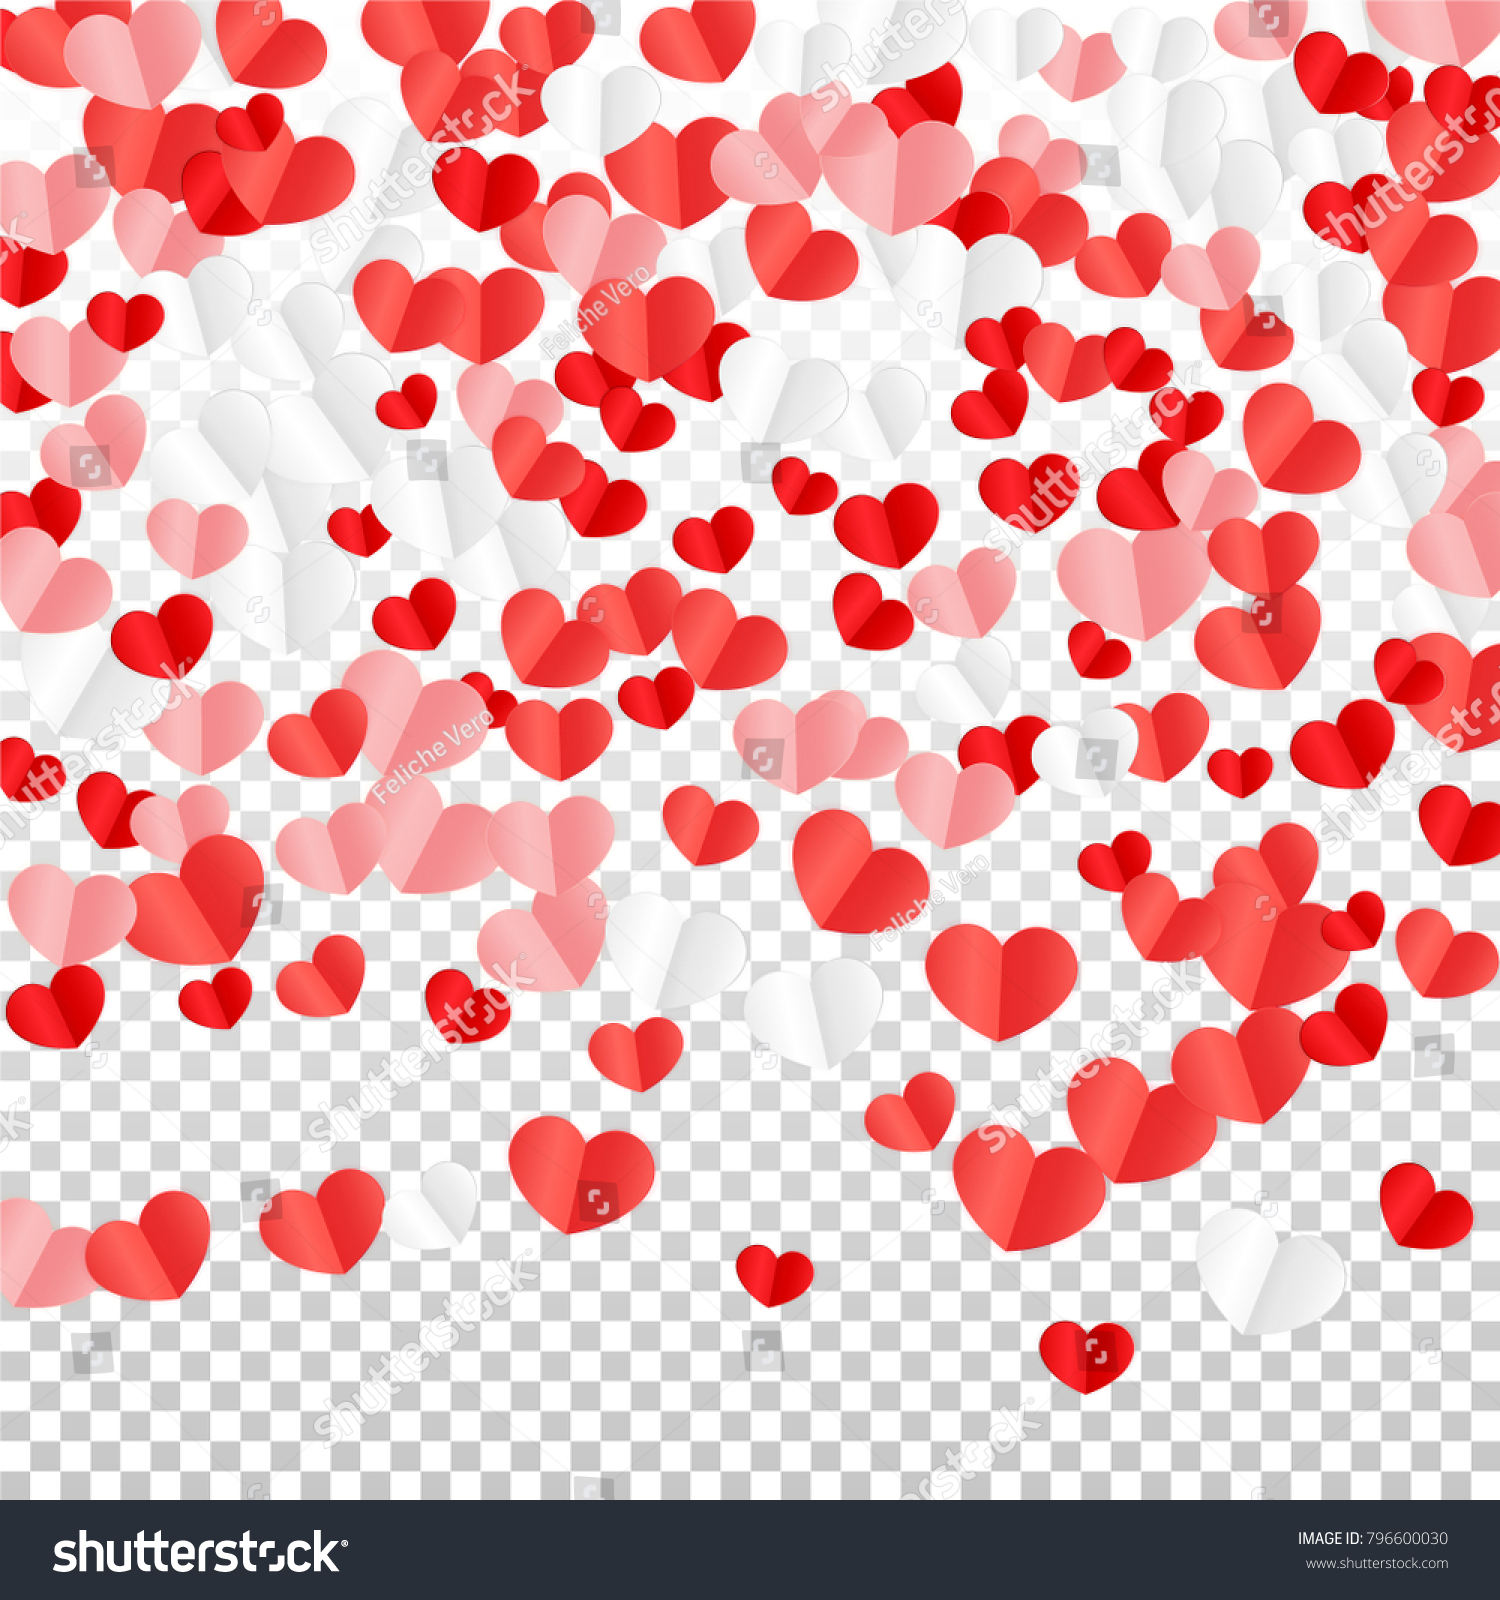 Wonderful Wallpaper Love Anniversary - stock-vector-hearts-confetti-background-st-valentine-s-day-pattern-romantic-scattered-hearts-wallpaper-796600030  Collection_41469.jpg